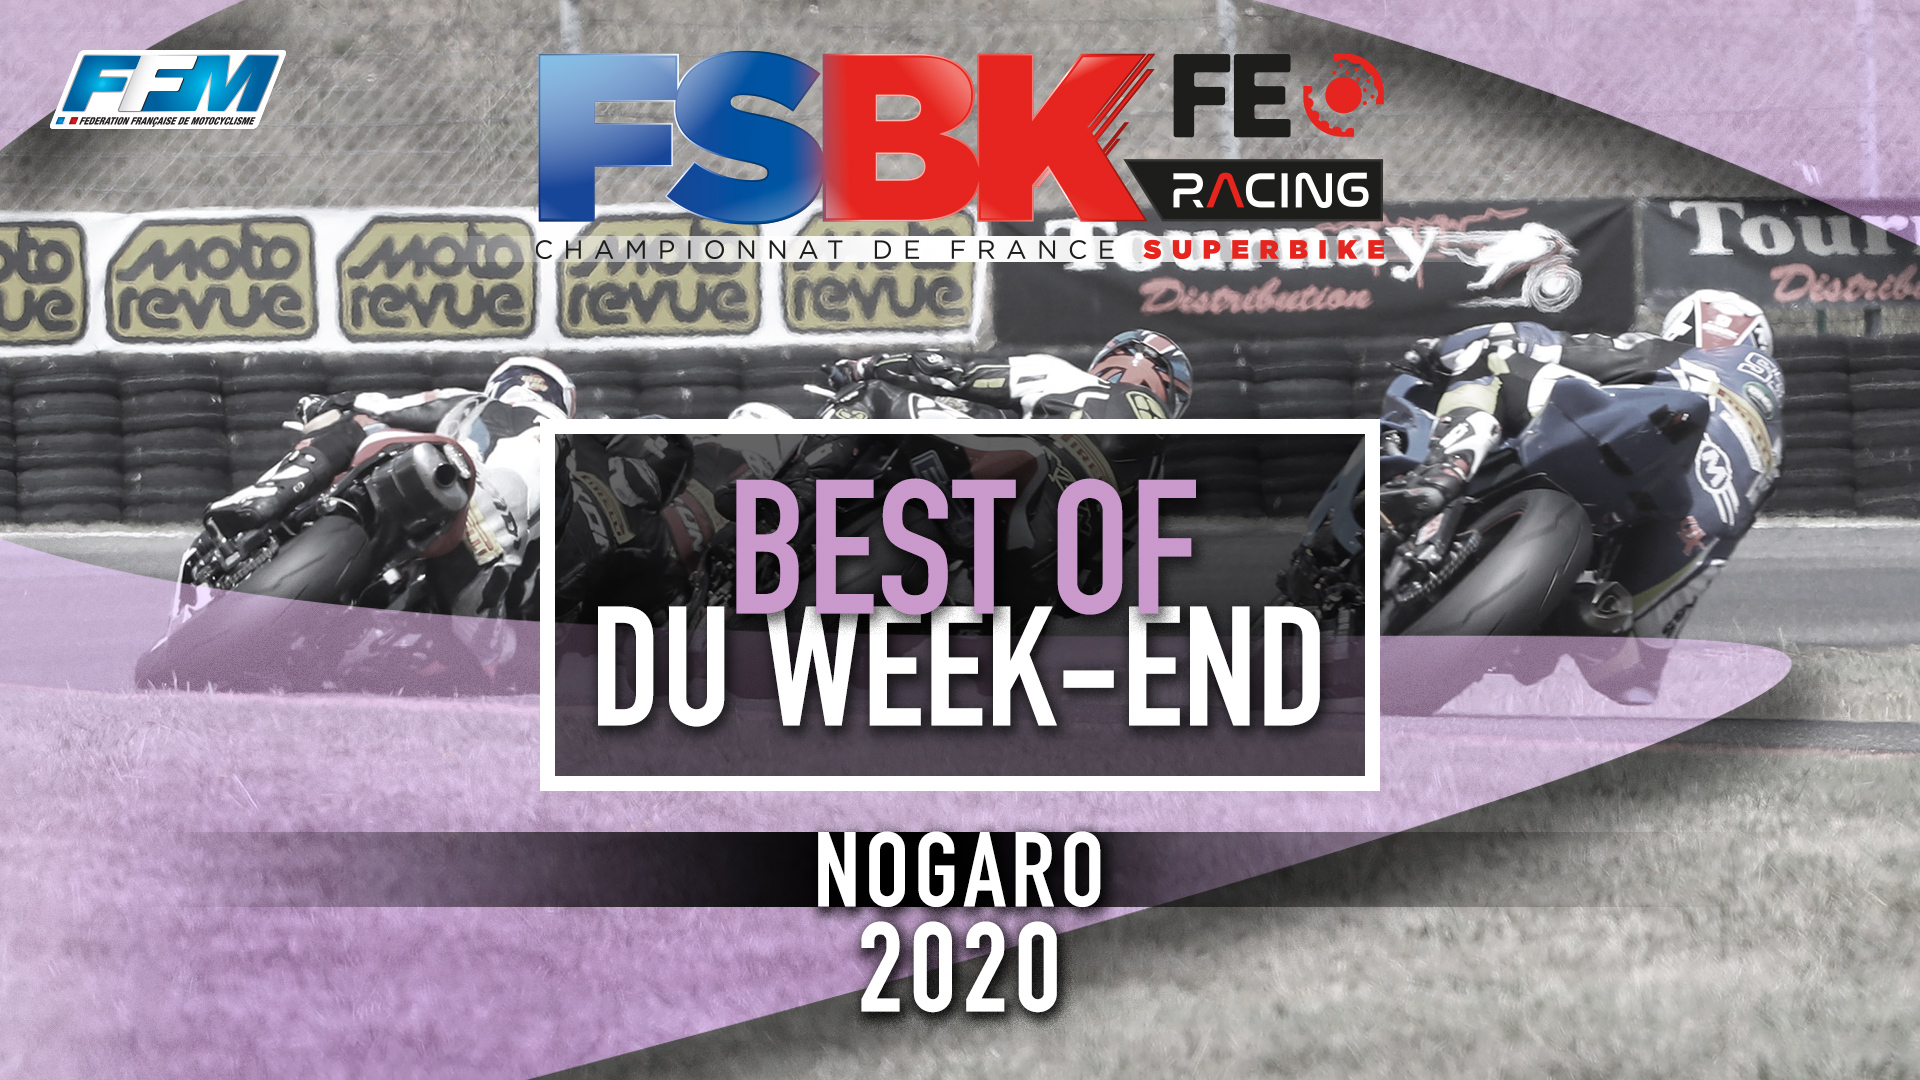 // BEST OF  NOGARO (32) //